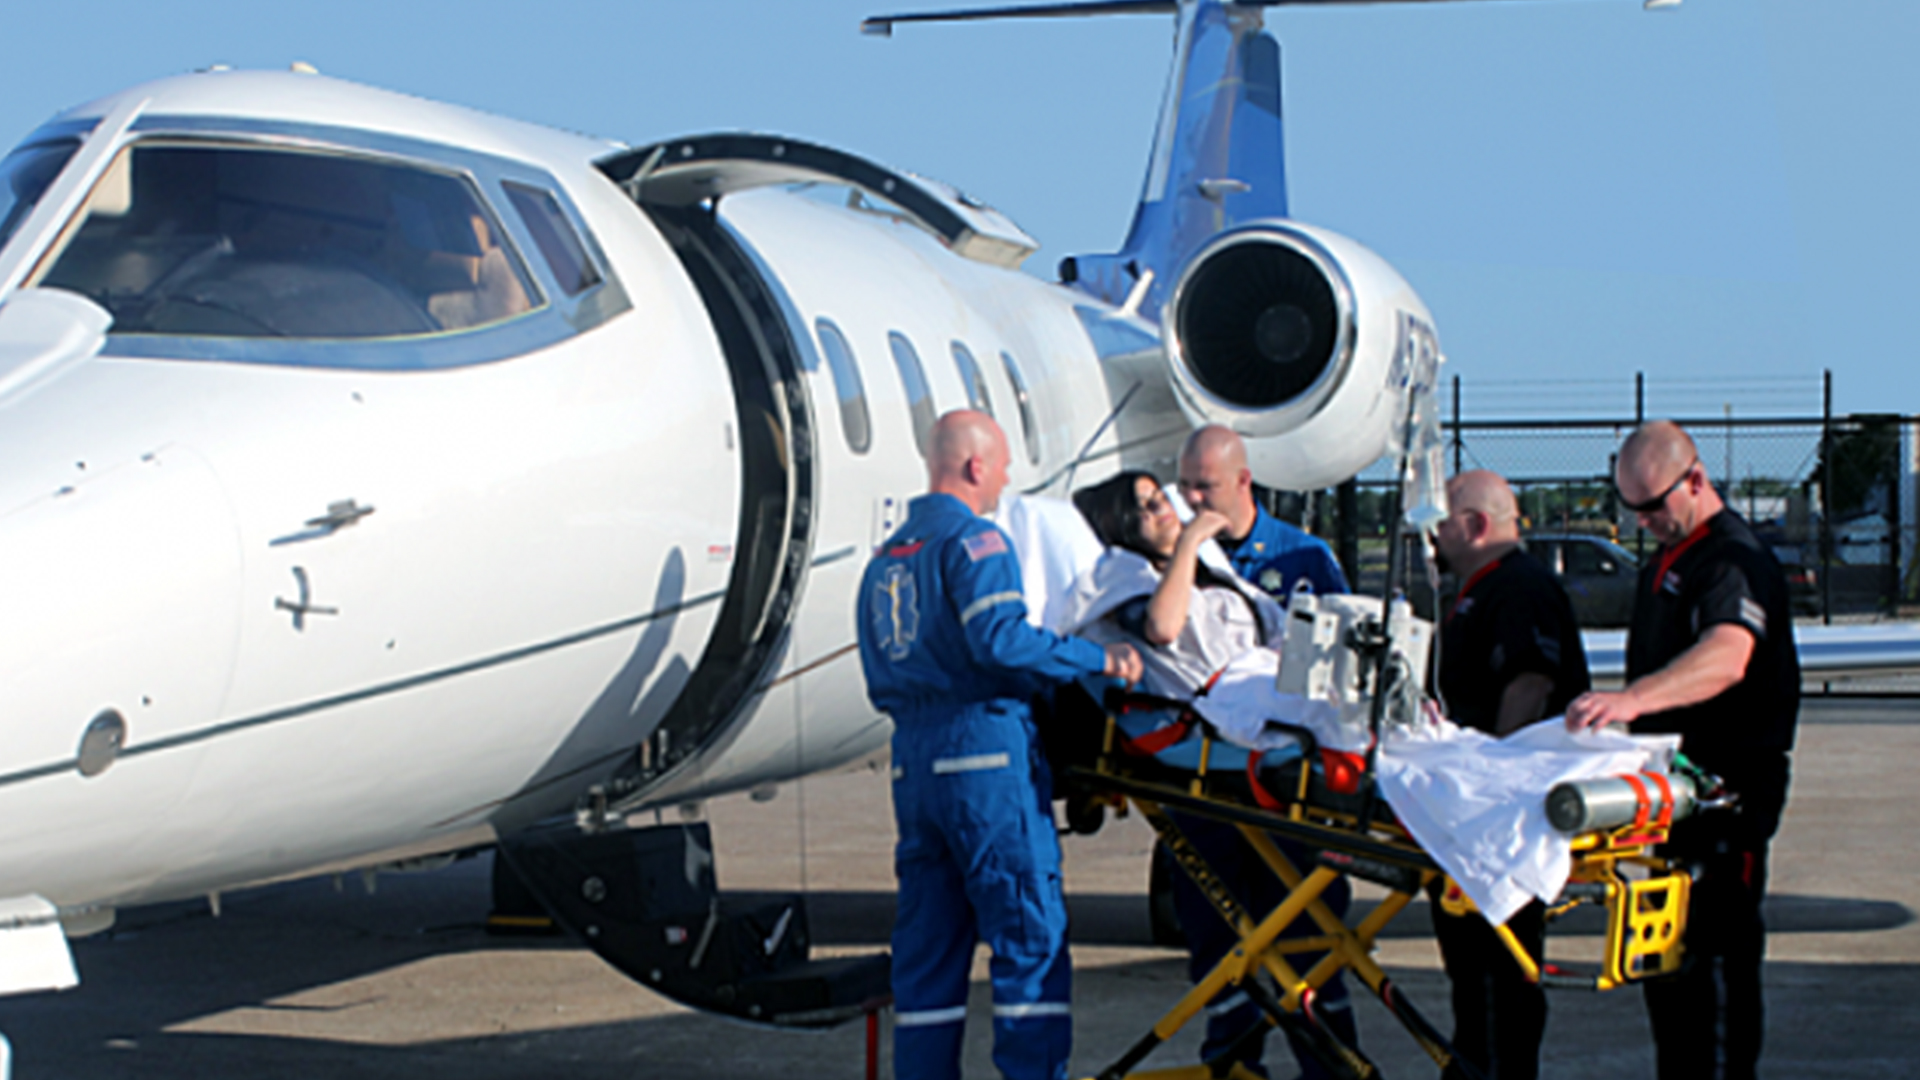 patient carried into air ambulance aircraft